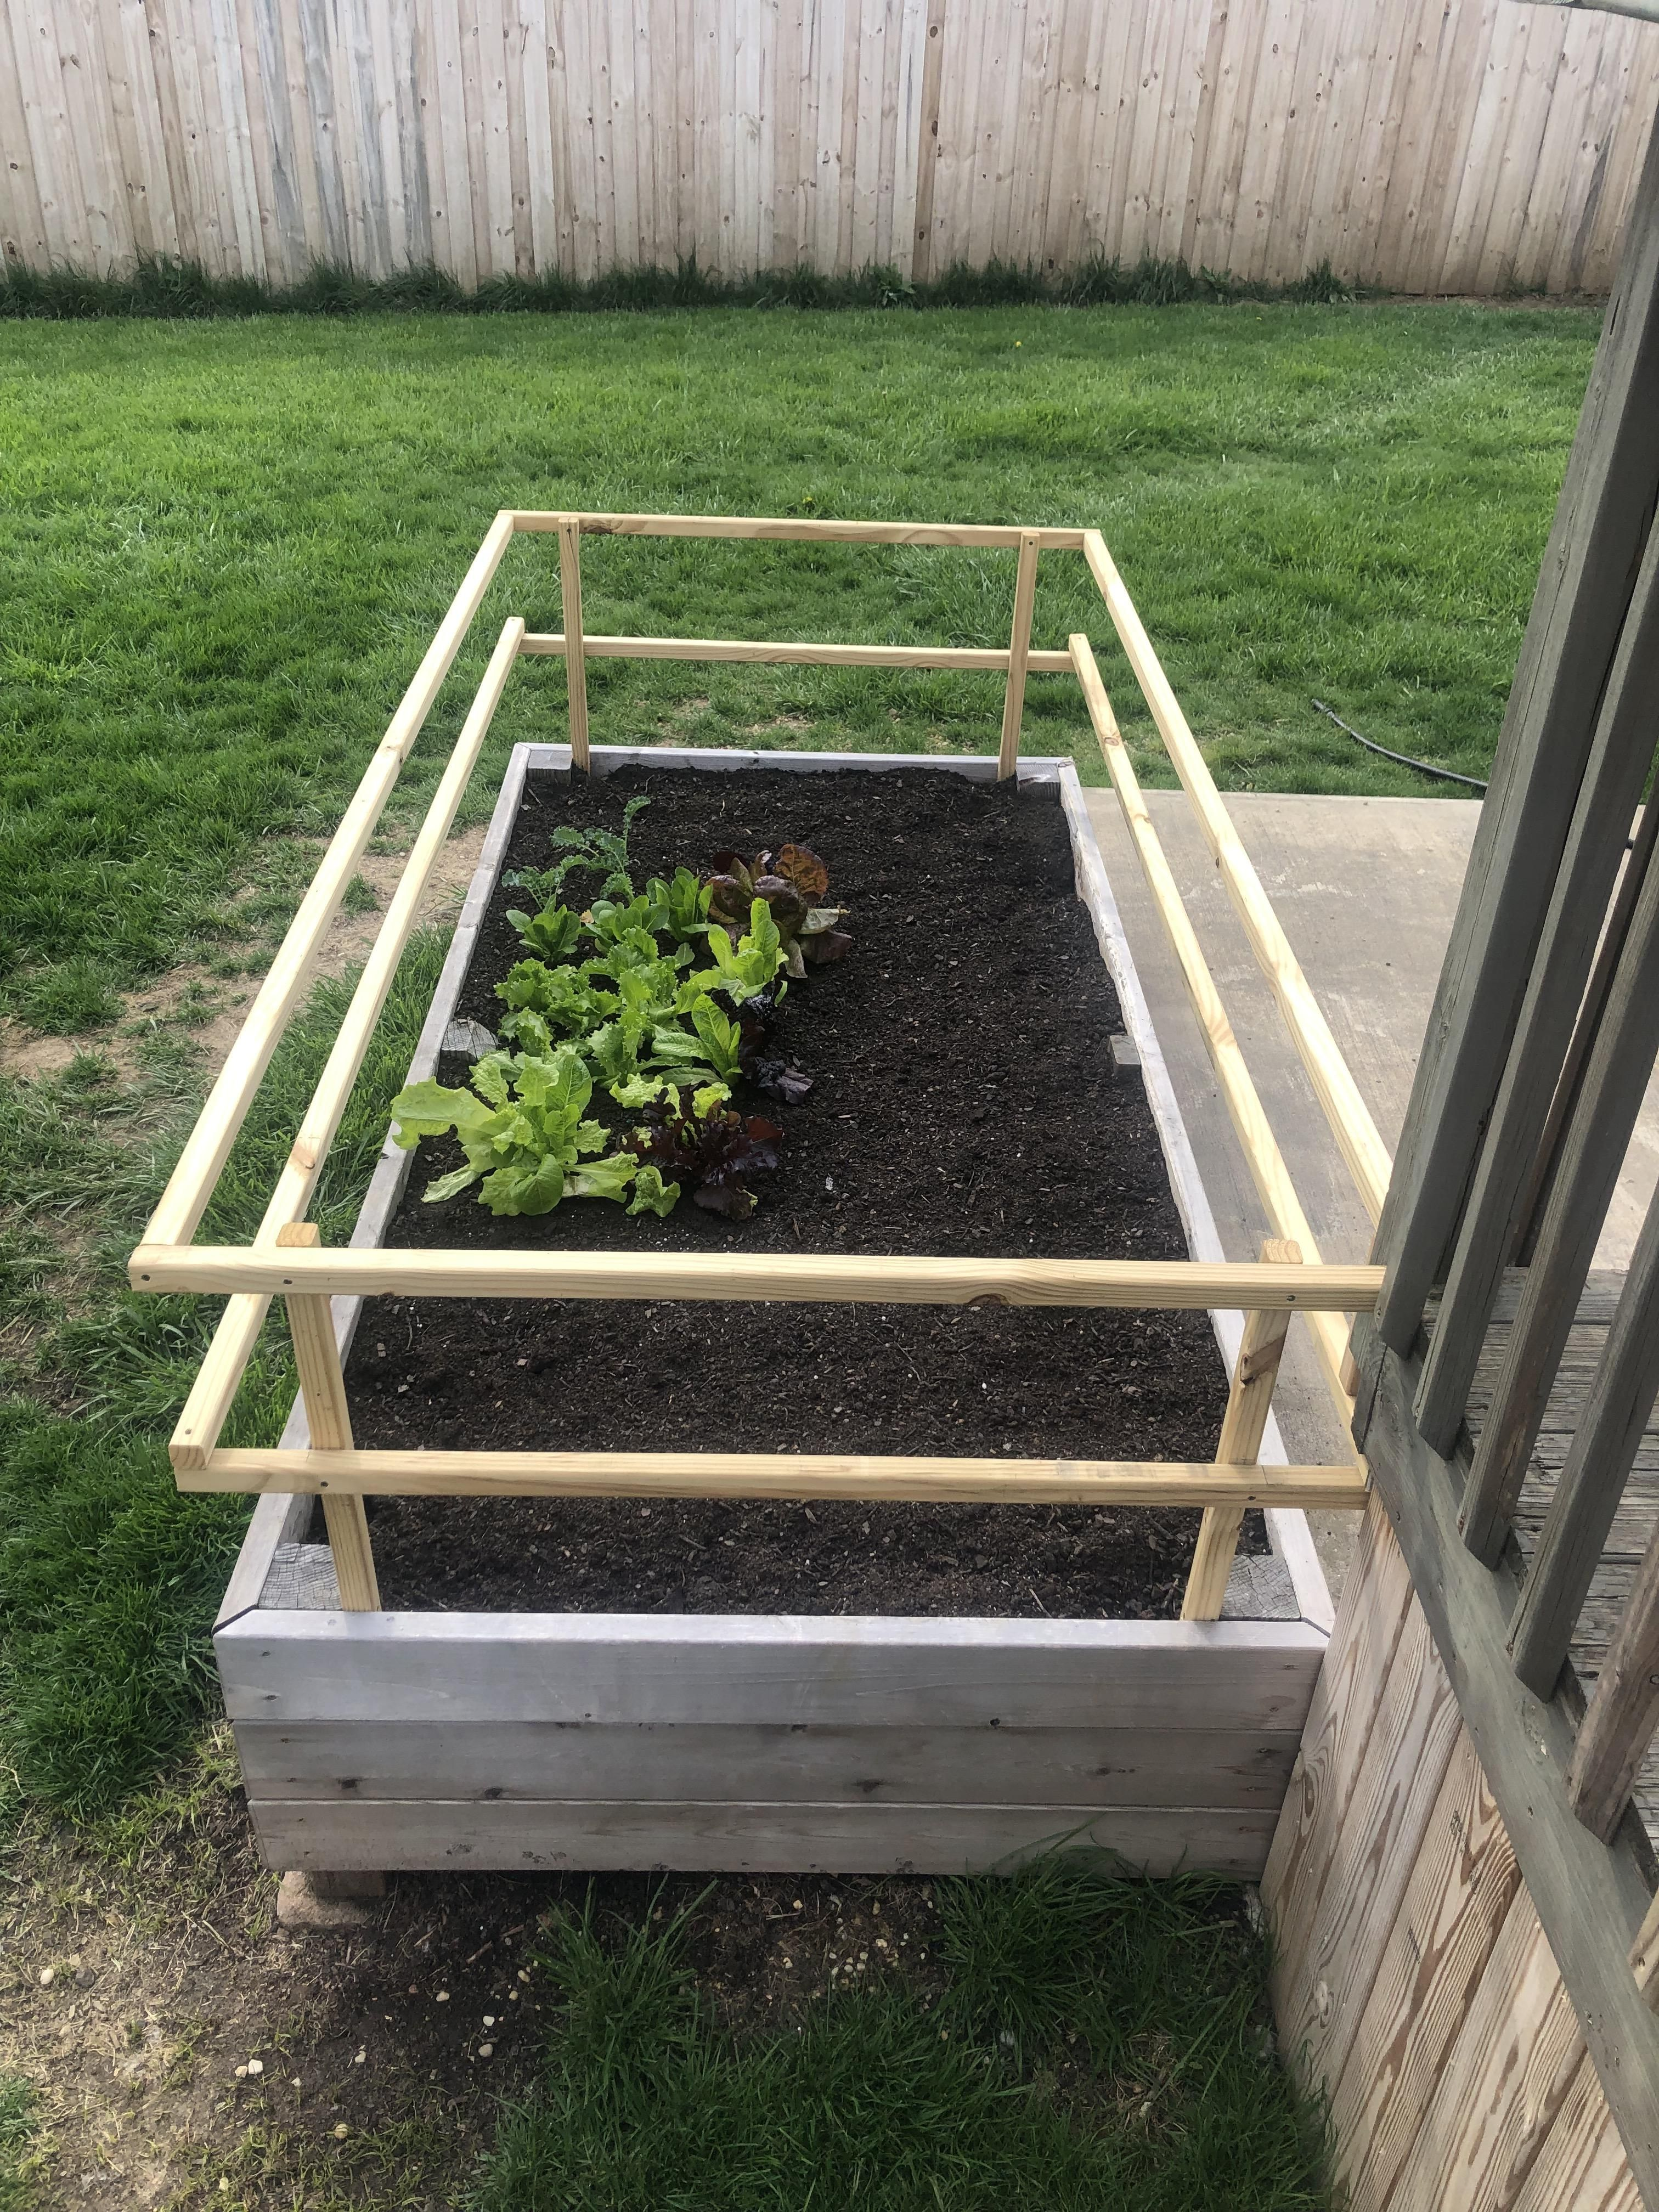 Our lettuce is looking good in our dog-proof garden box